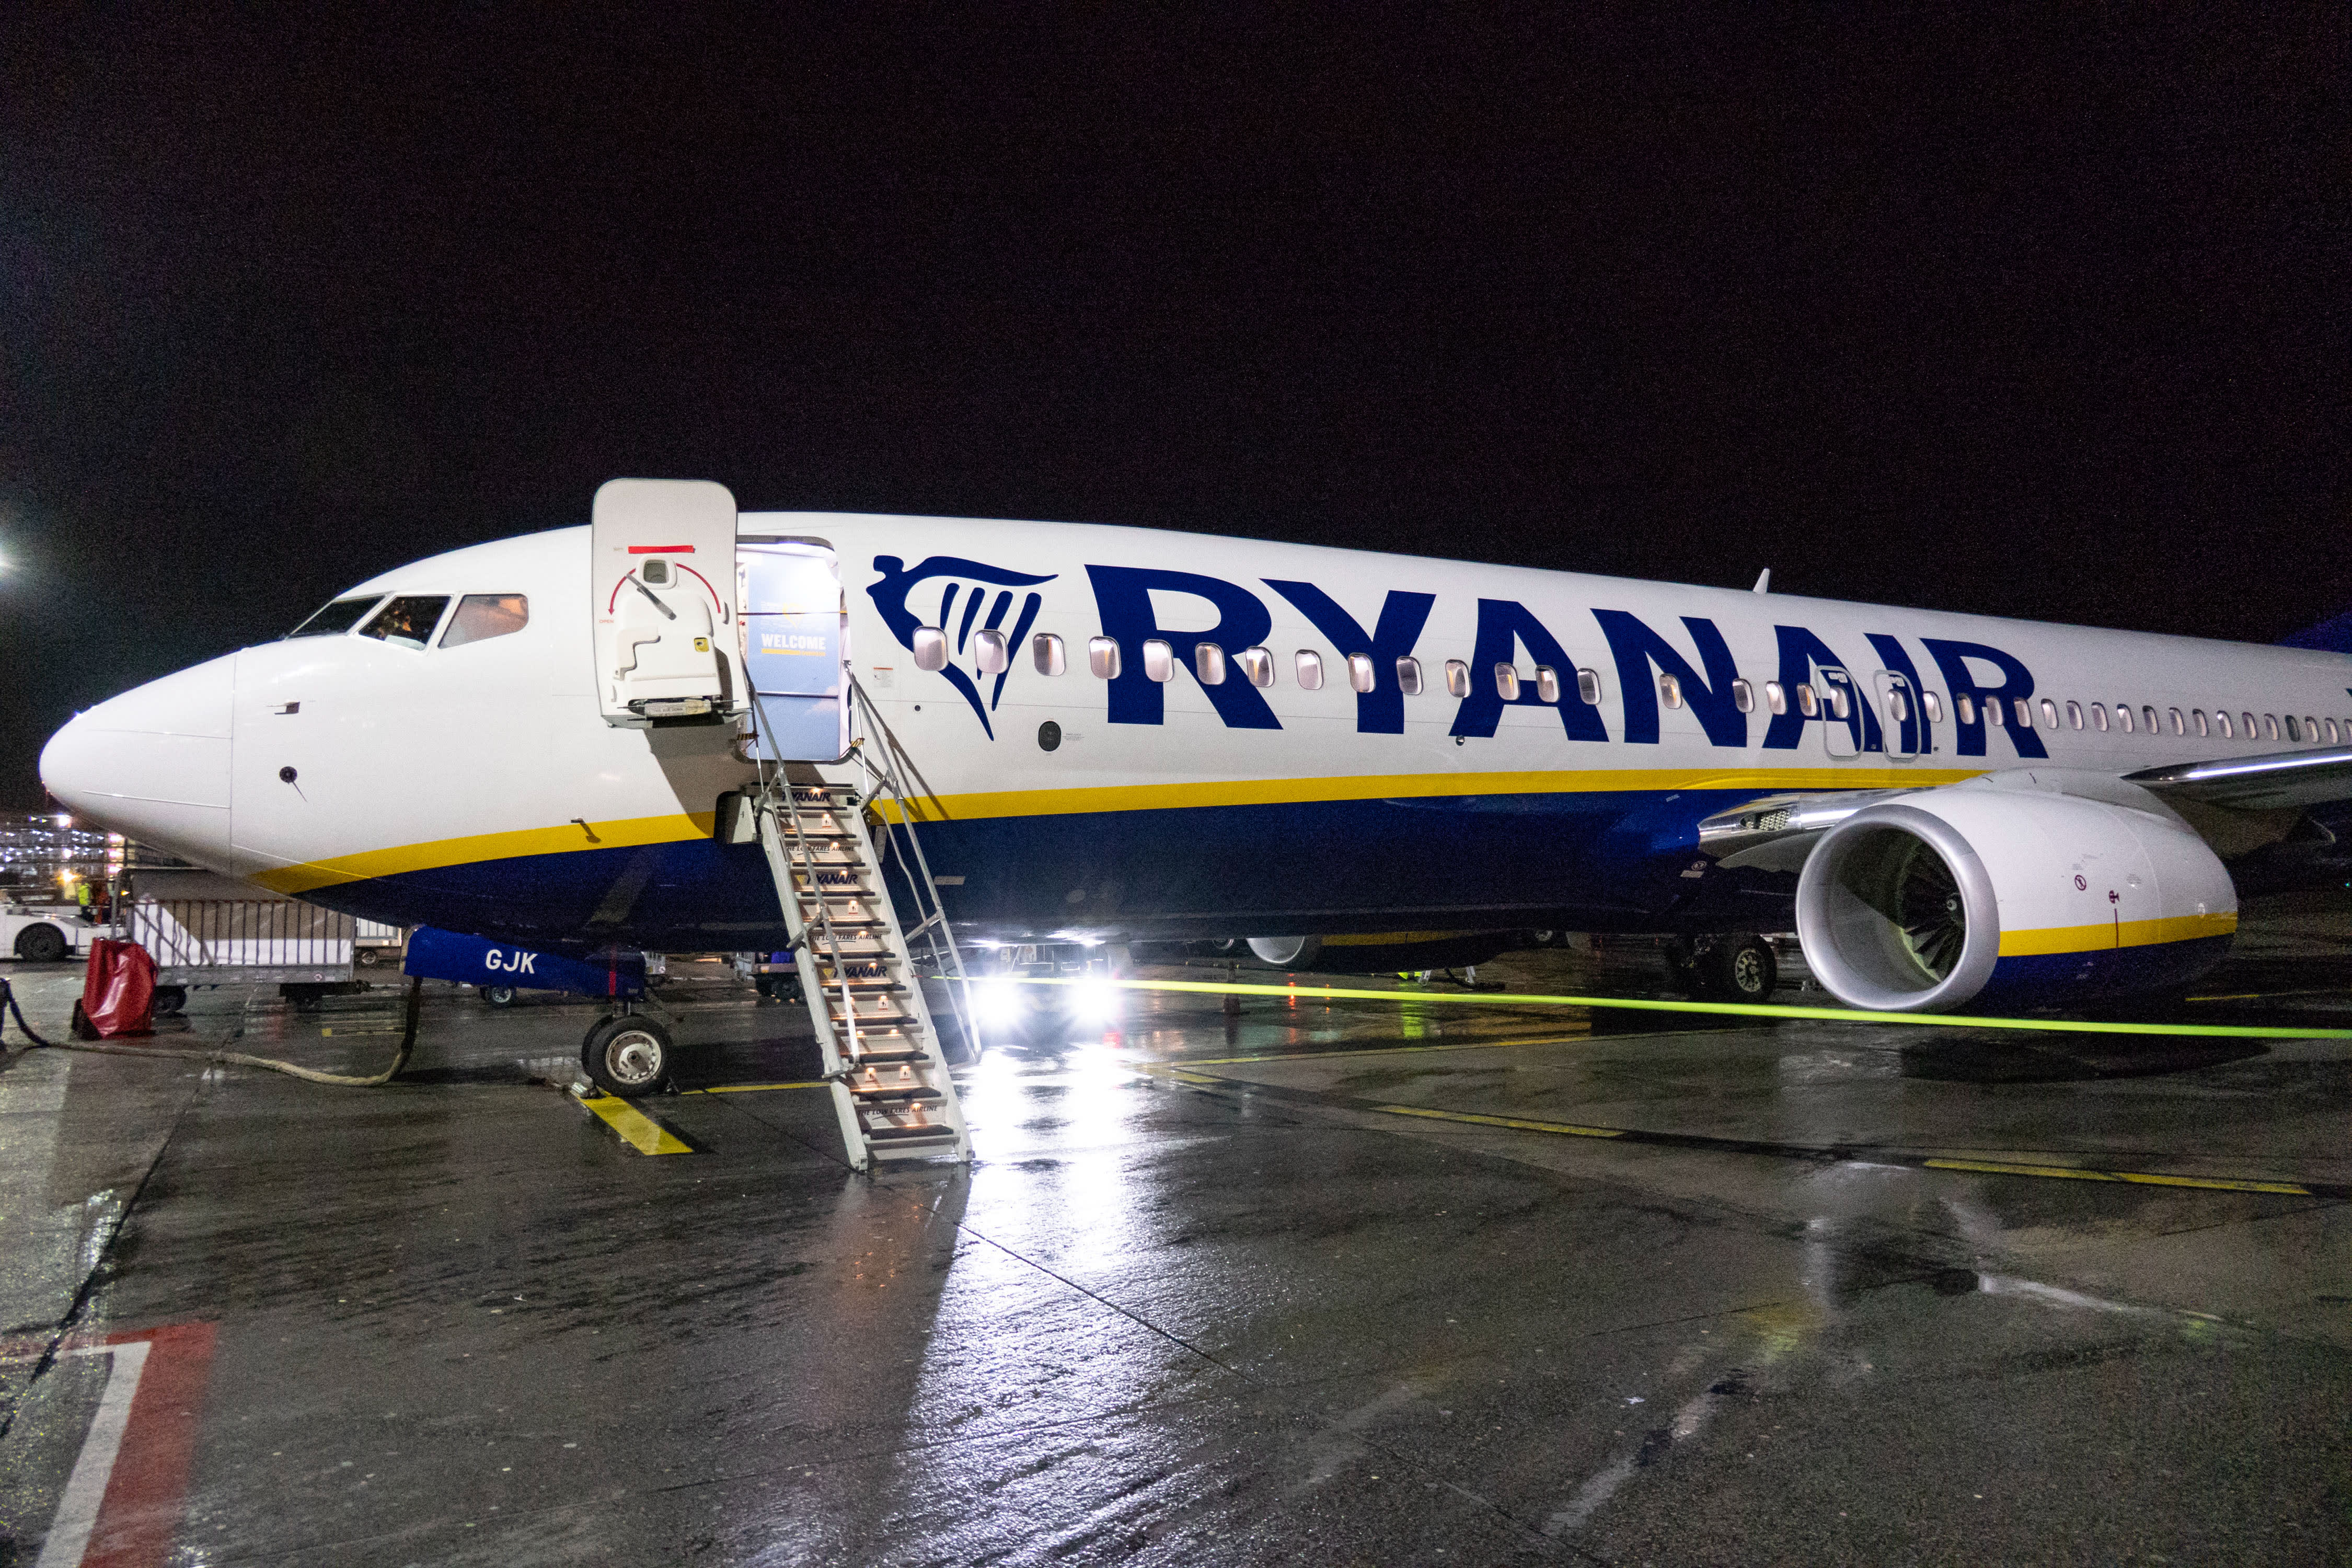 Environmentalists were seen as 'nutters,' Ryanair CEO says, and he was an 'original skeptic'